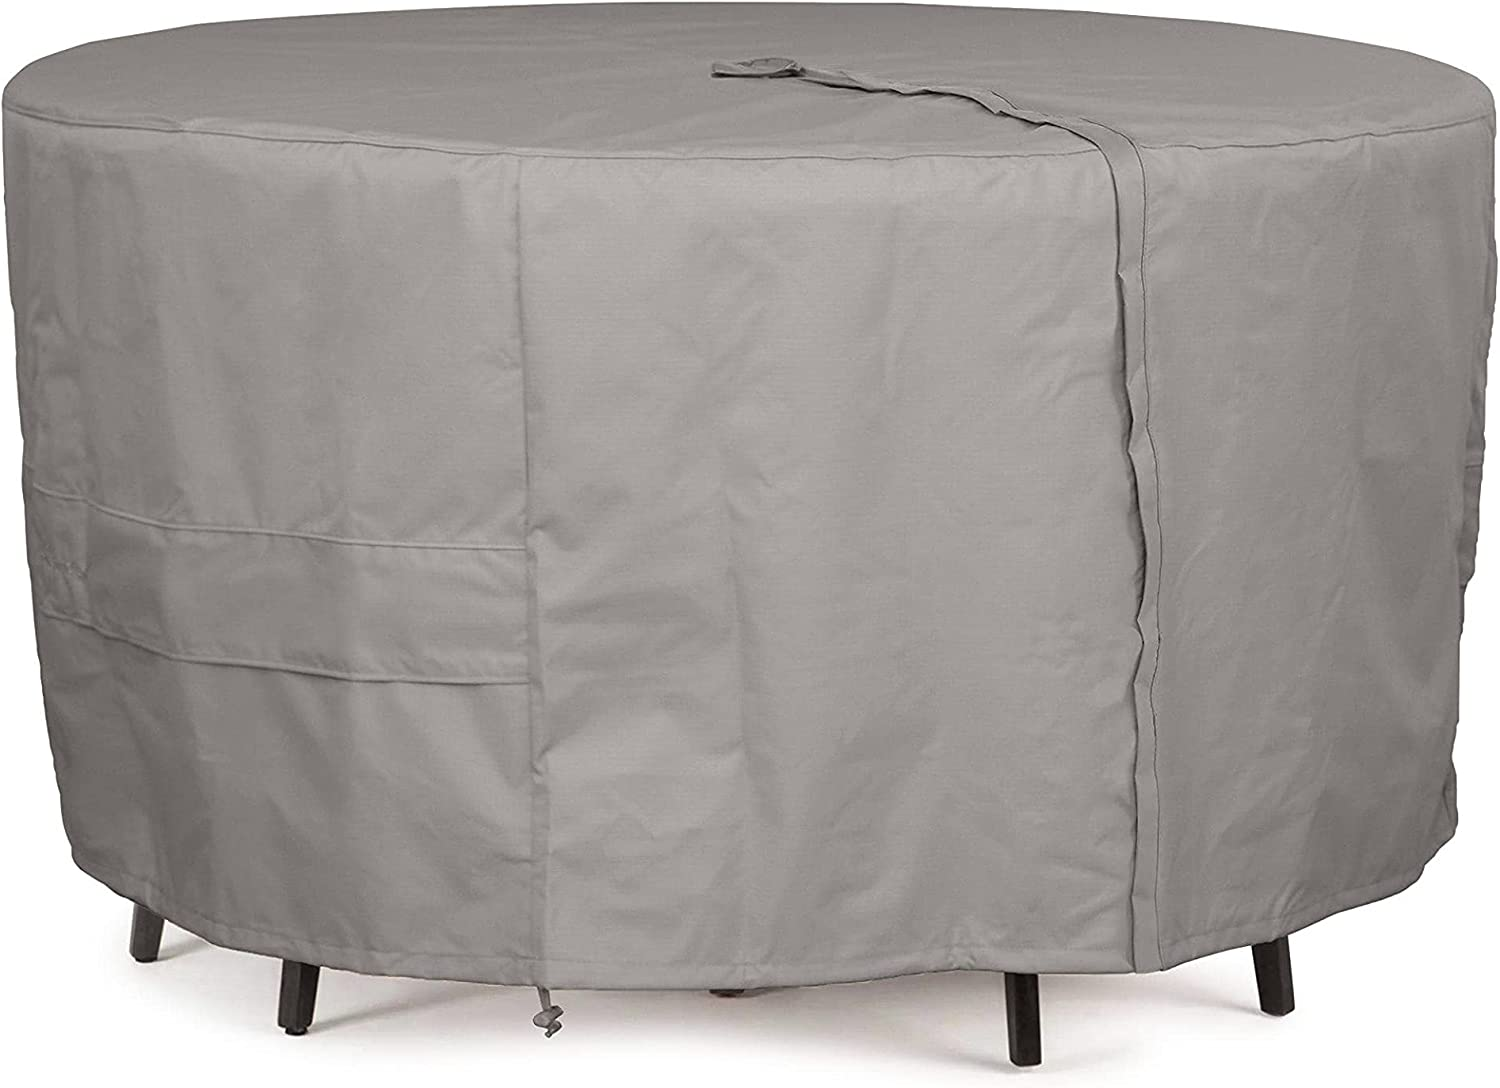 Covermates Round Dining Table/Chair Set Cover   Heavy Duty Polyester,  Weather Resistant, Center Hole for Umbrella, Patio Table Covers Ripstop Grey